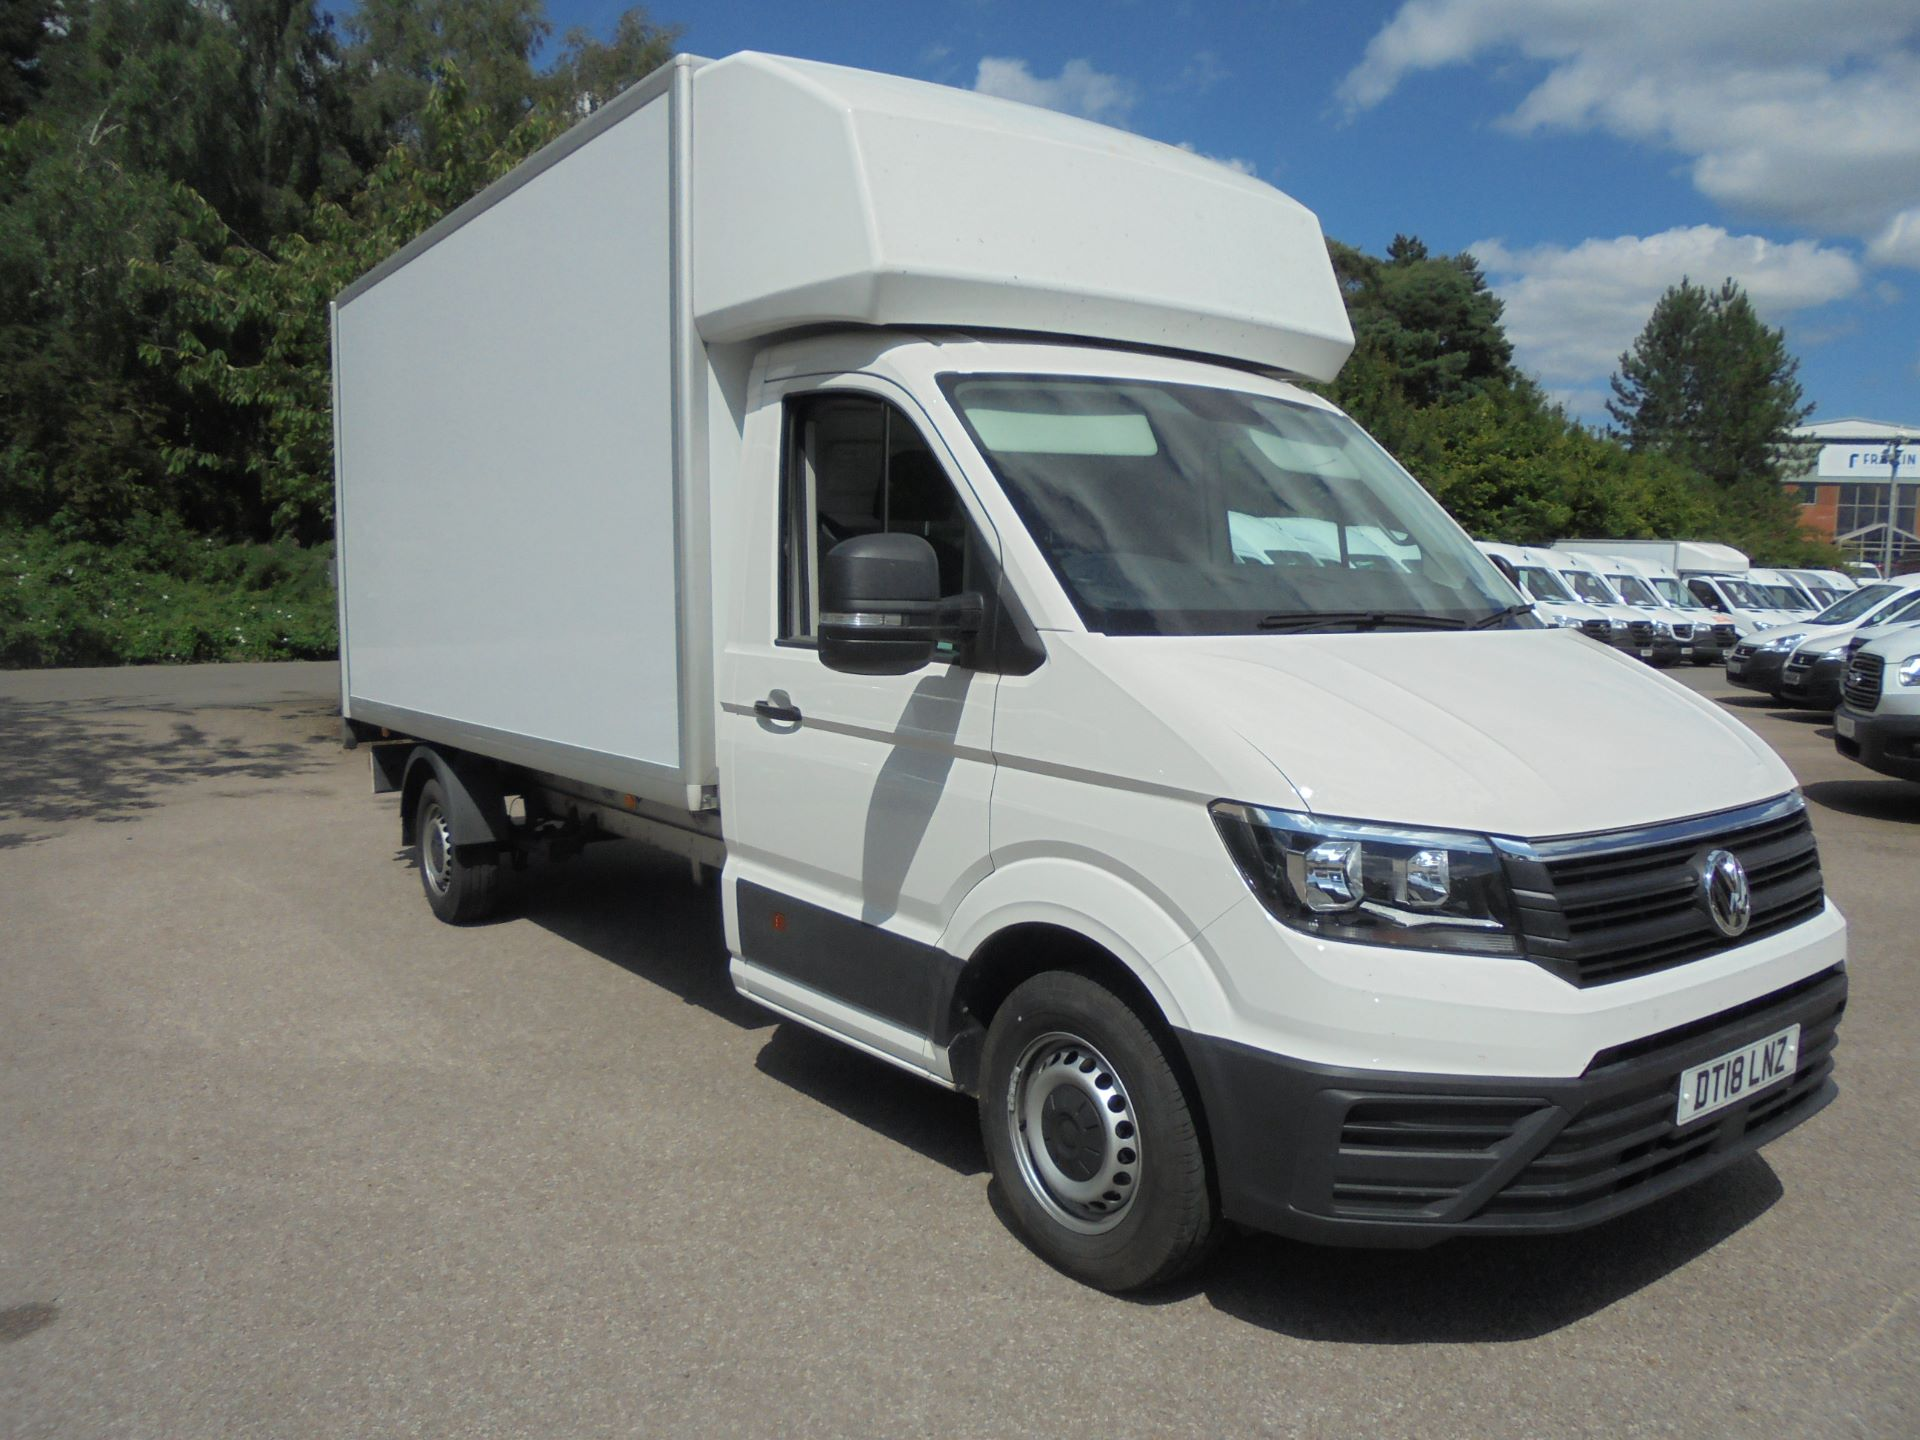 2018 Volkswagen Crafter 2.0 Tdi 140Ps Startline Chassis Cab (DT18LNZ) Thumbnail 1